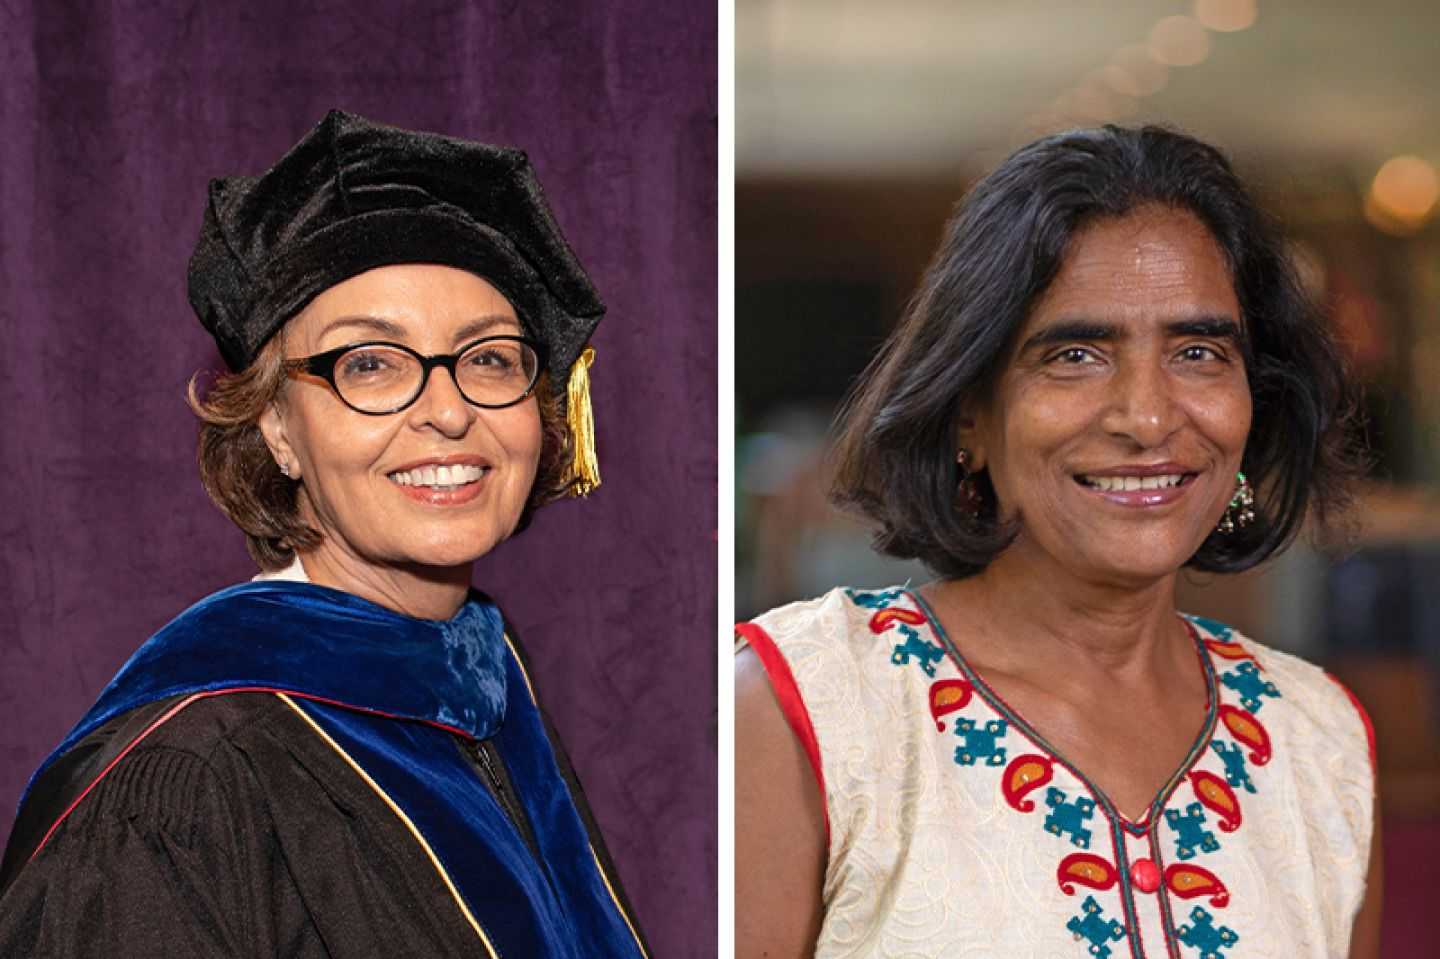 St. Kate's Economics Professor Nasrin Jewell and Professor Emerita Deep Shikha